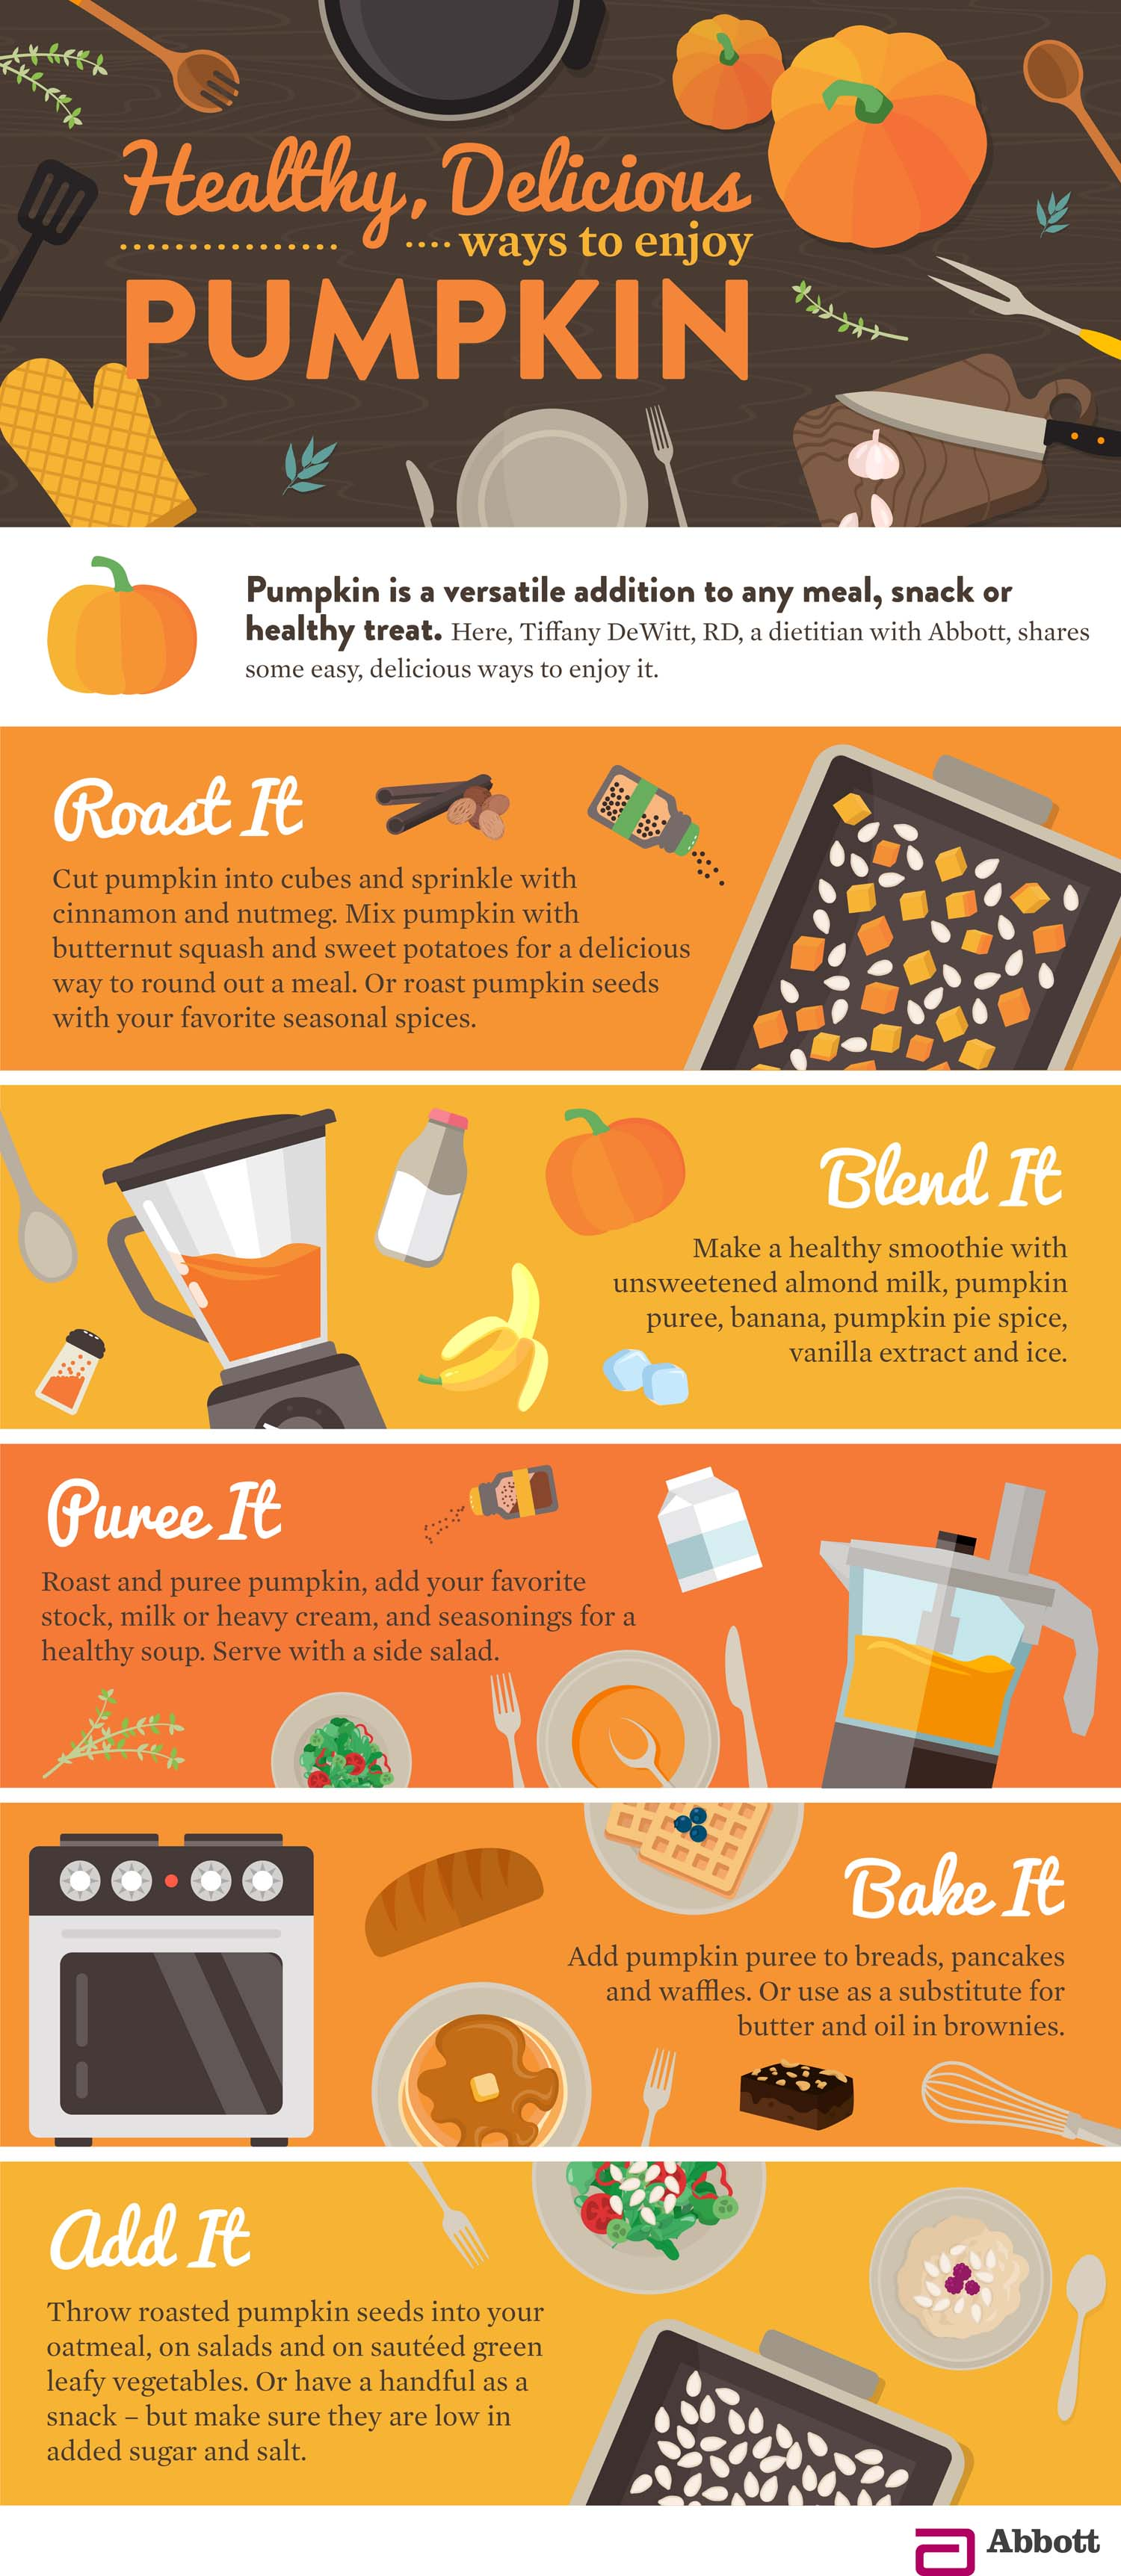 6 Healthy Delicious Ways To Enjoy Pumpkin